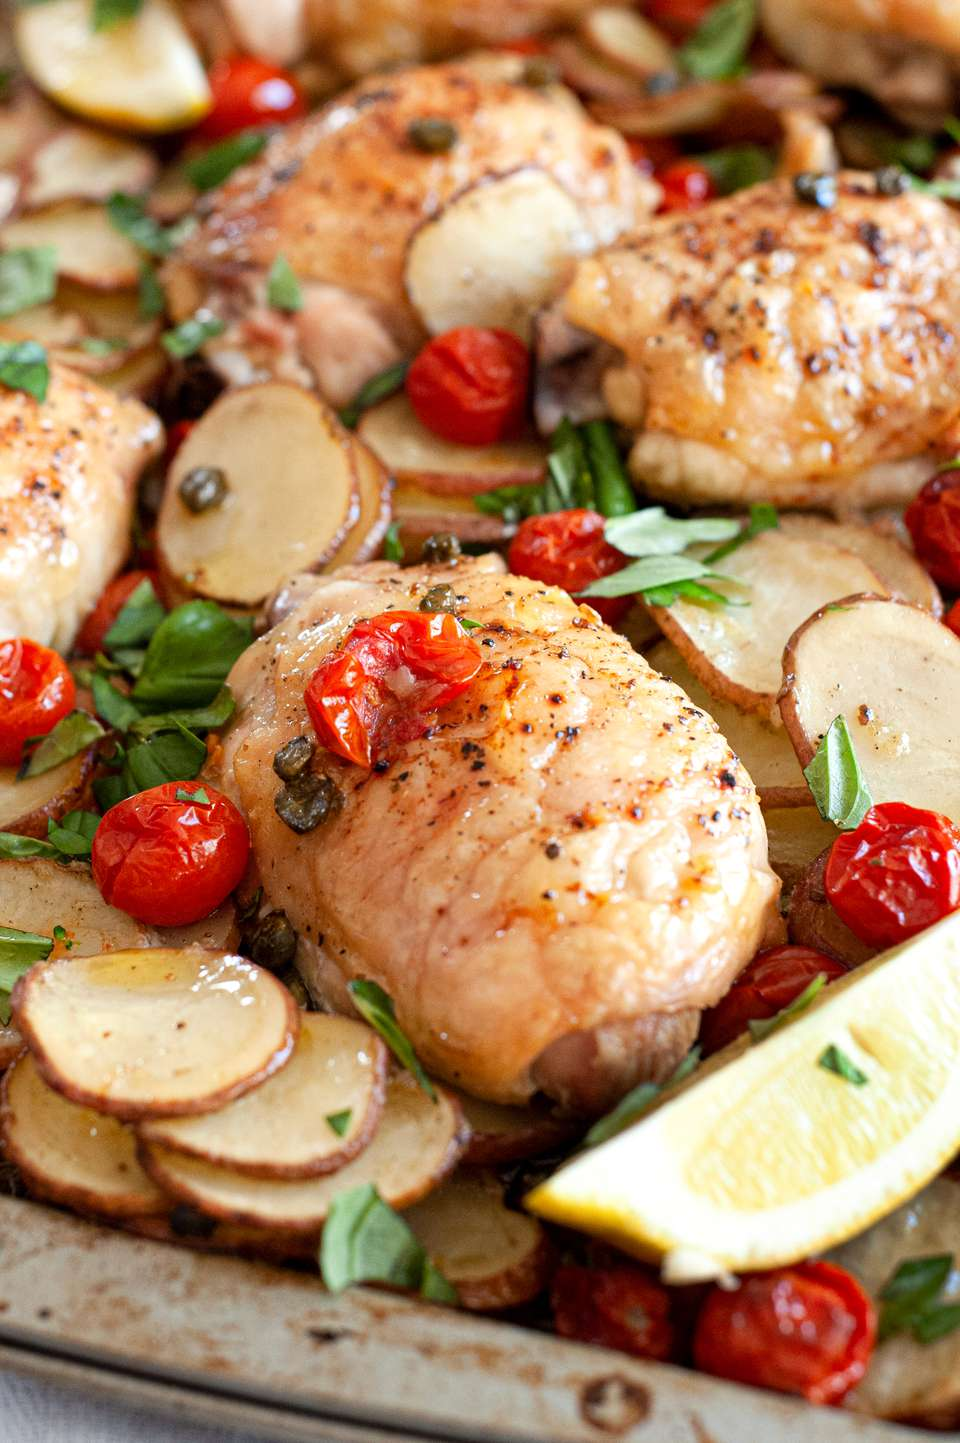 Sheet pan chicken thighs with tomatoes, potatoes, capers, and basil on a sheet pan.